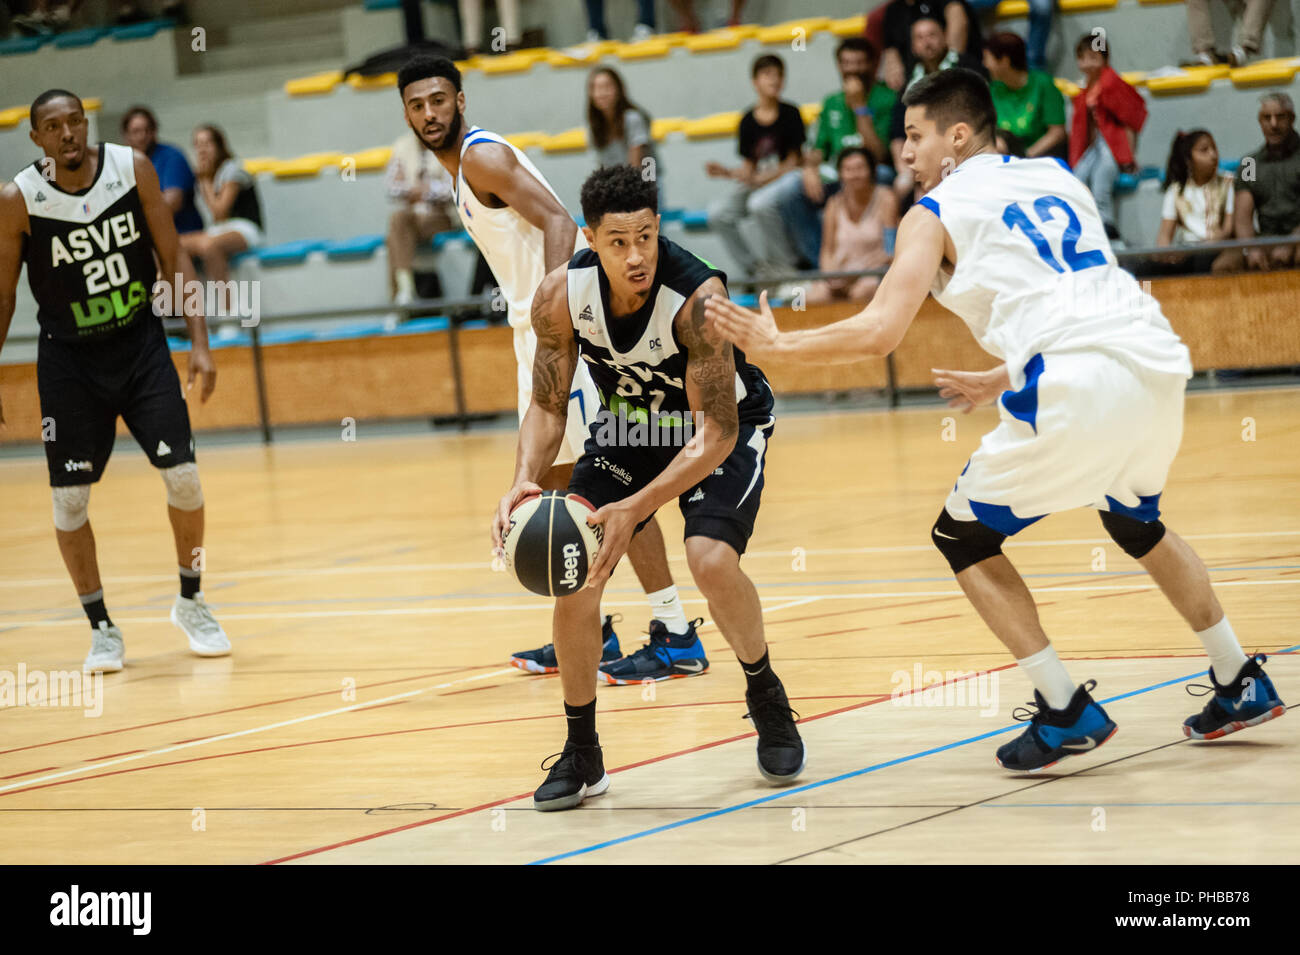 Belleville-sur-Saône, France. 31st August 2018.  Ain Star Games is a preparation tournament - The match was against ASVEL and KK Mornar Bar (88-68). Anthony Slaughter with the ball. Credit: FRANCK CHAPOLARD/Alamy Live News - Stock Image